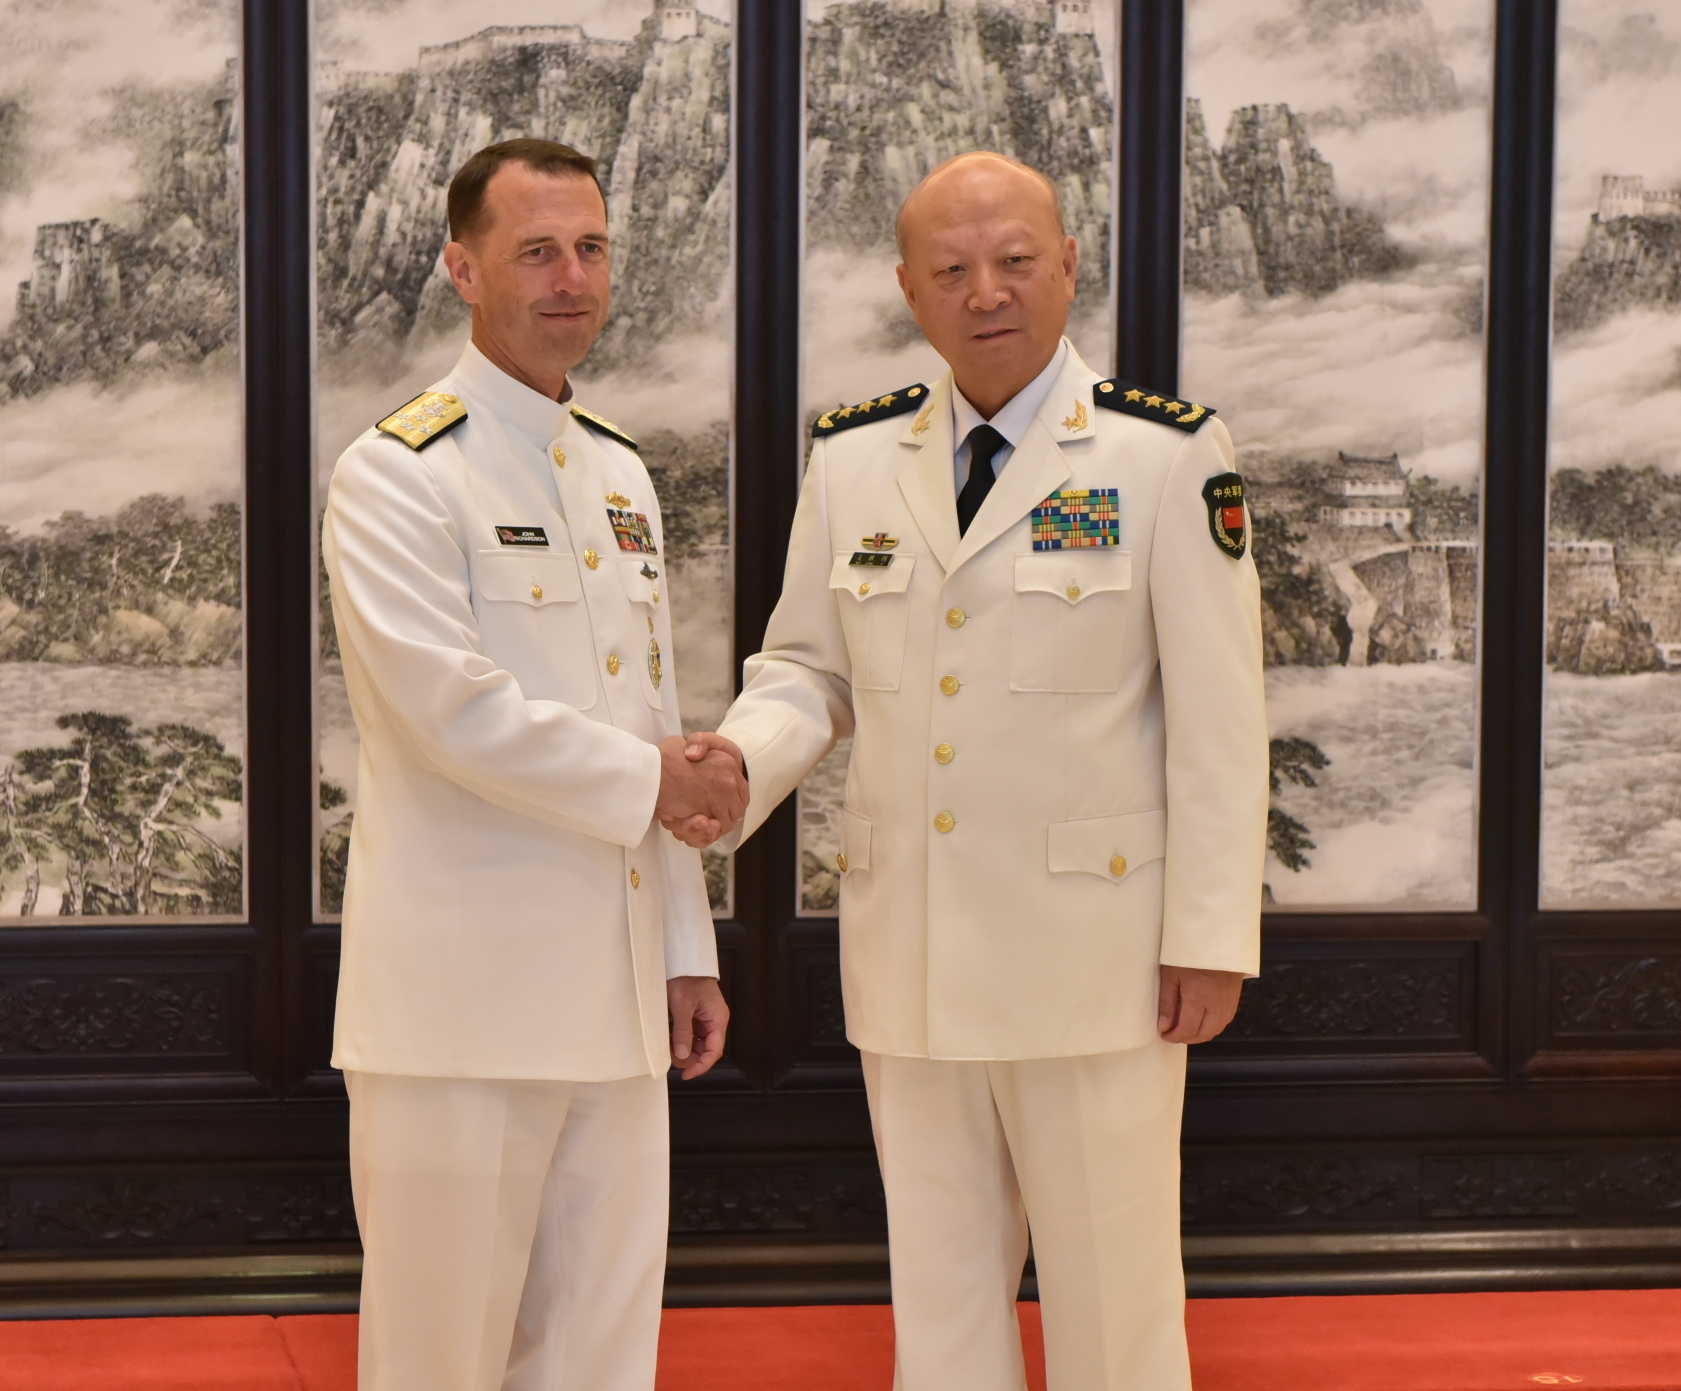 Chief of Naval Operations Adm. John Richardson meets with Adm. Wu Shengli, Commander of the People's Liberation Army Navy (PLAN) on July 18, 2016. US Navy Photo